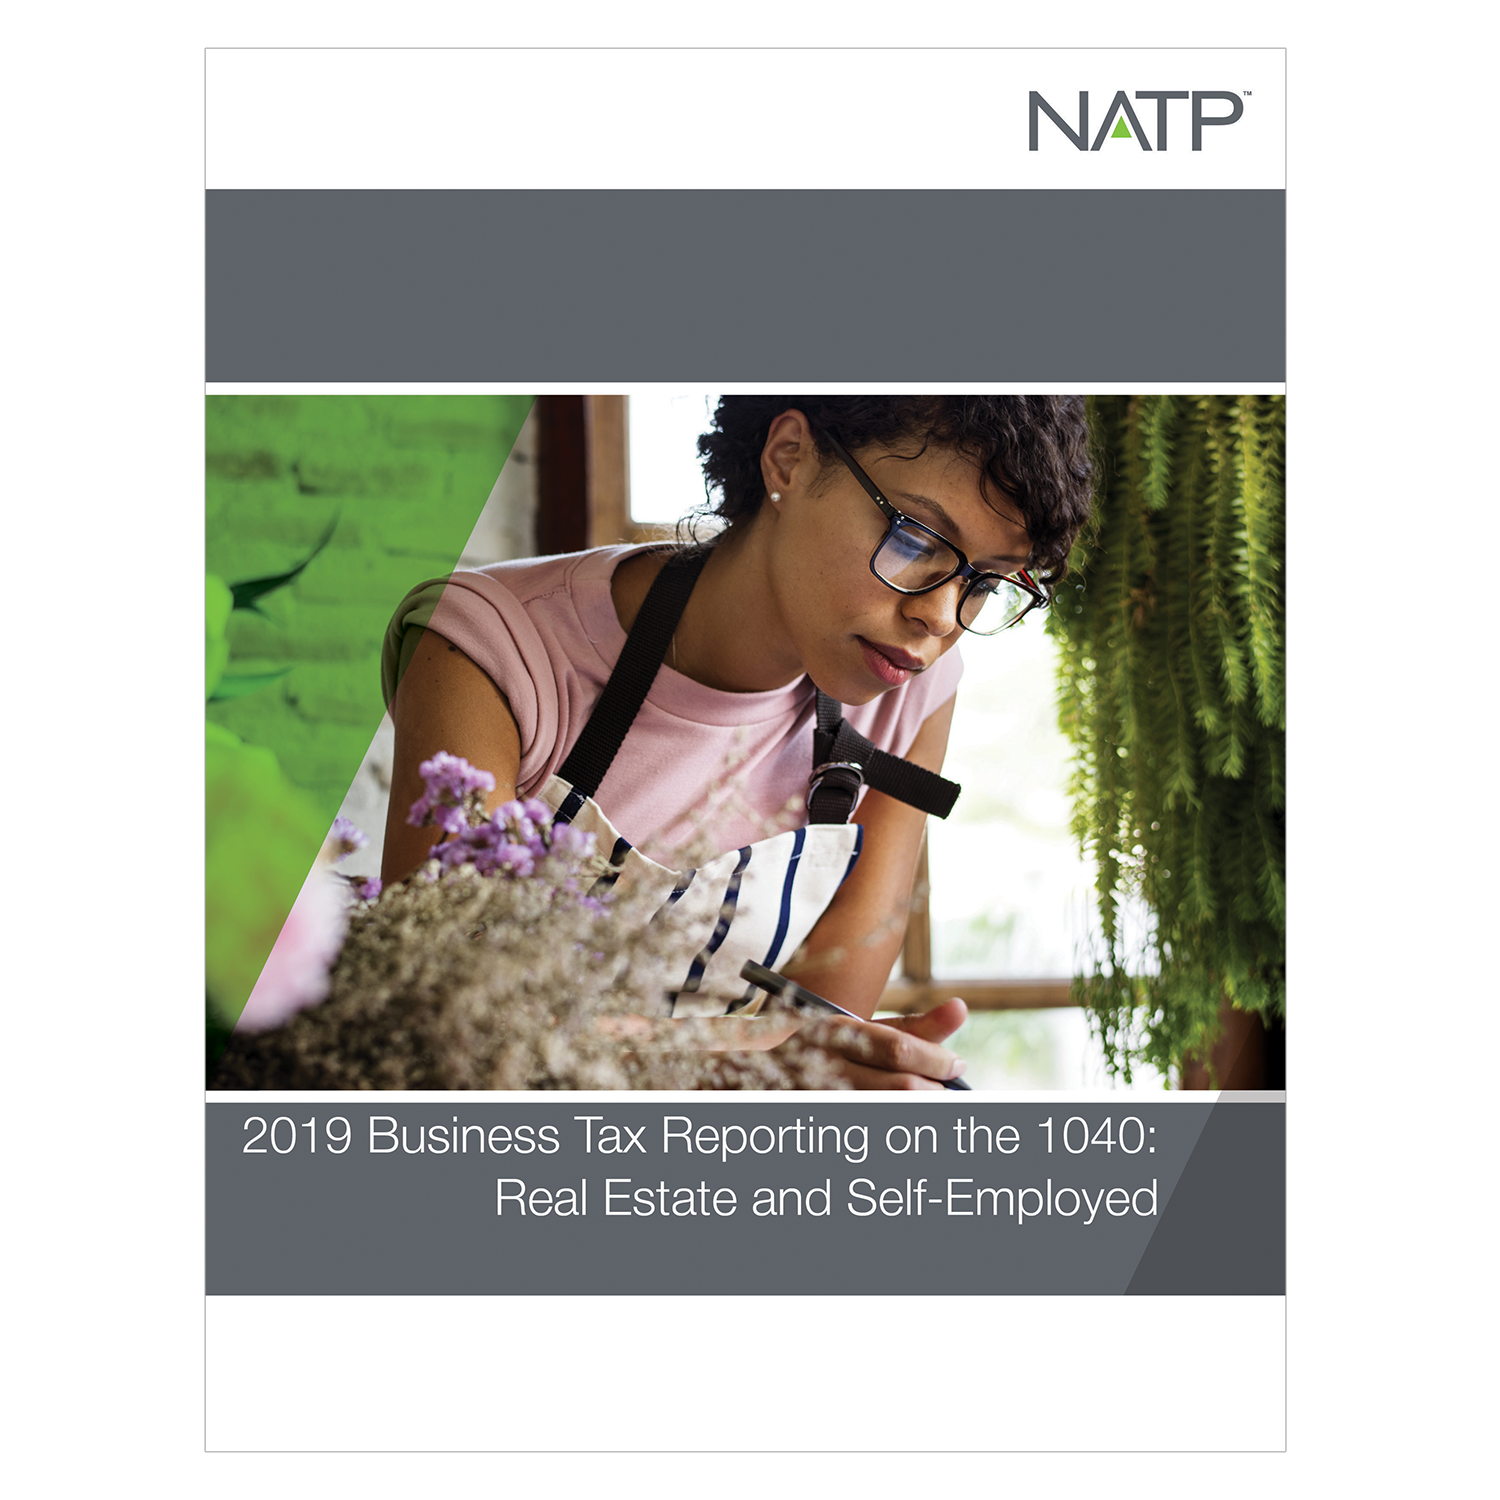 Business Tax Reporting on the 1040: Real Estate and Self-Employed (2019) - #3902